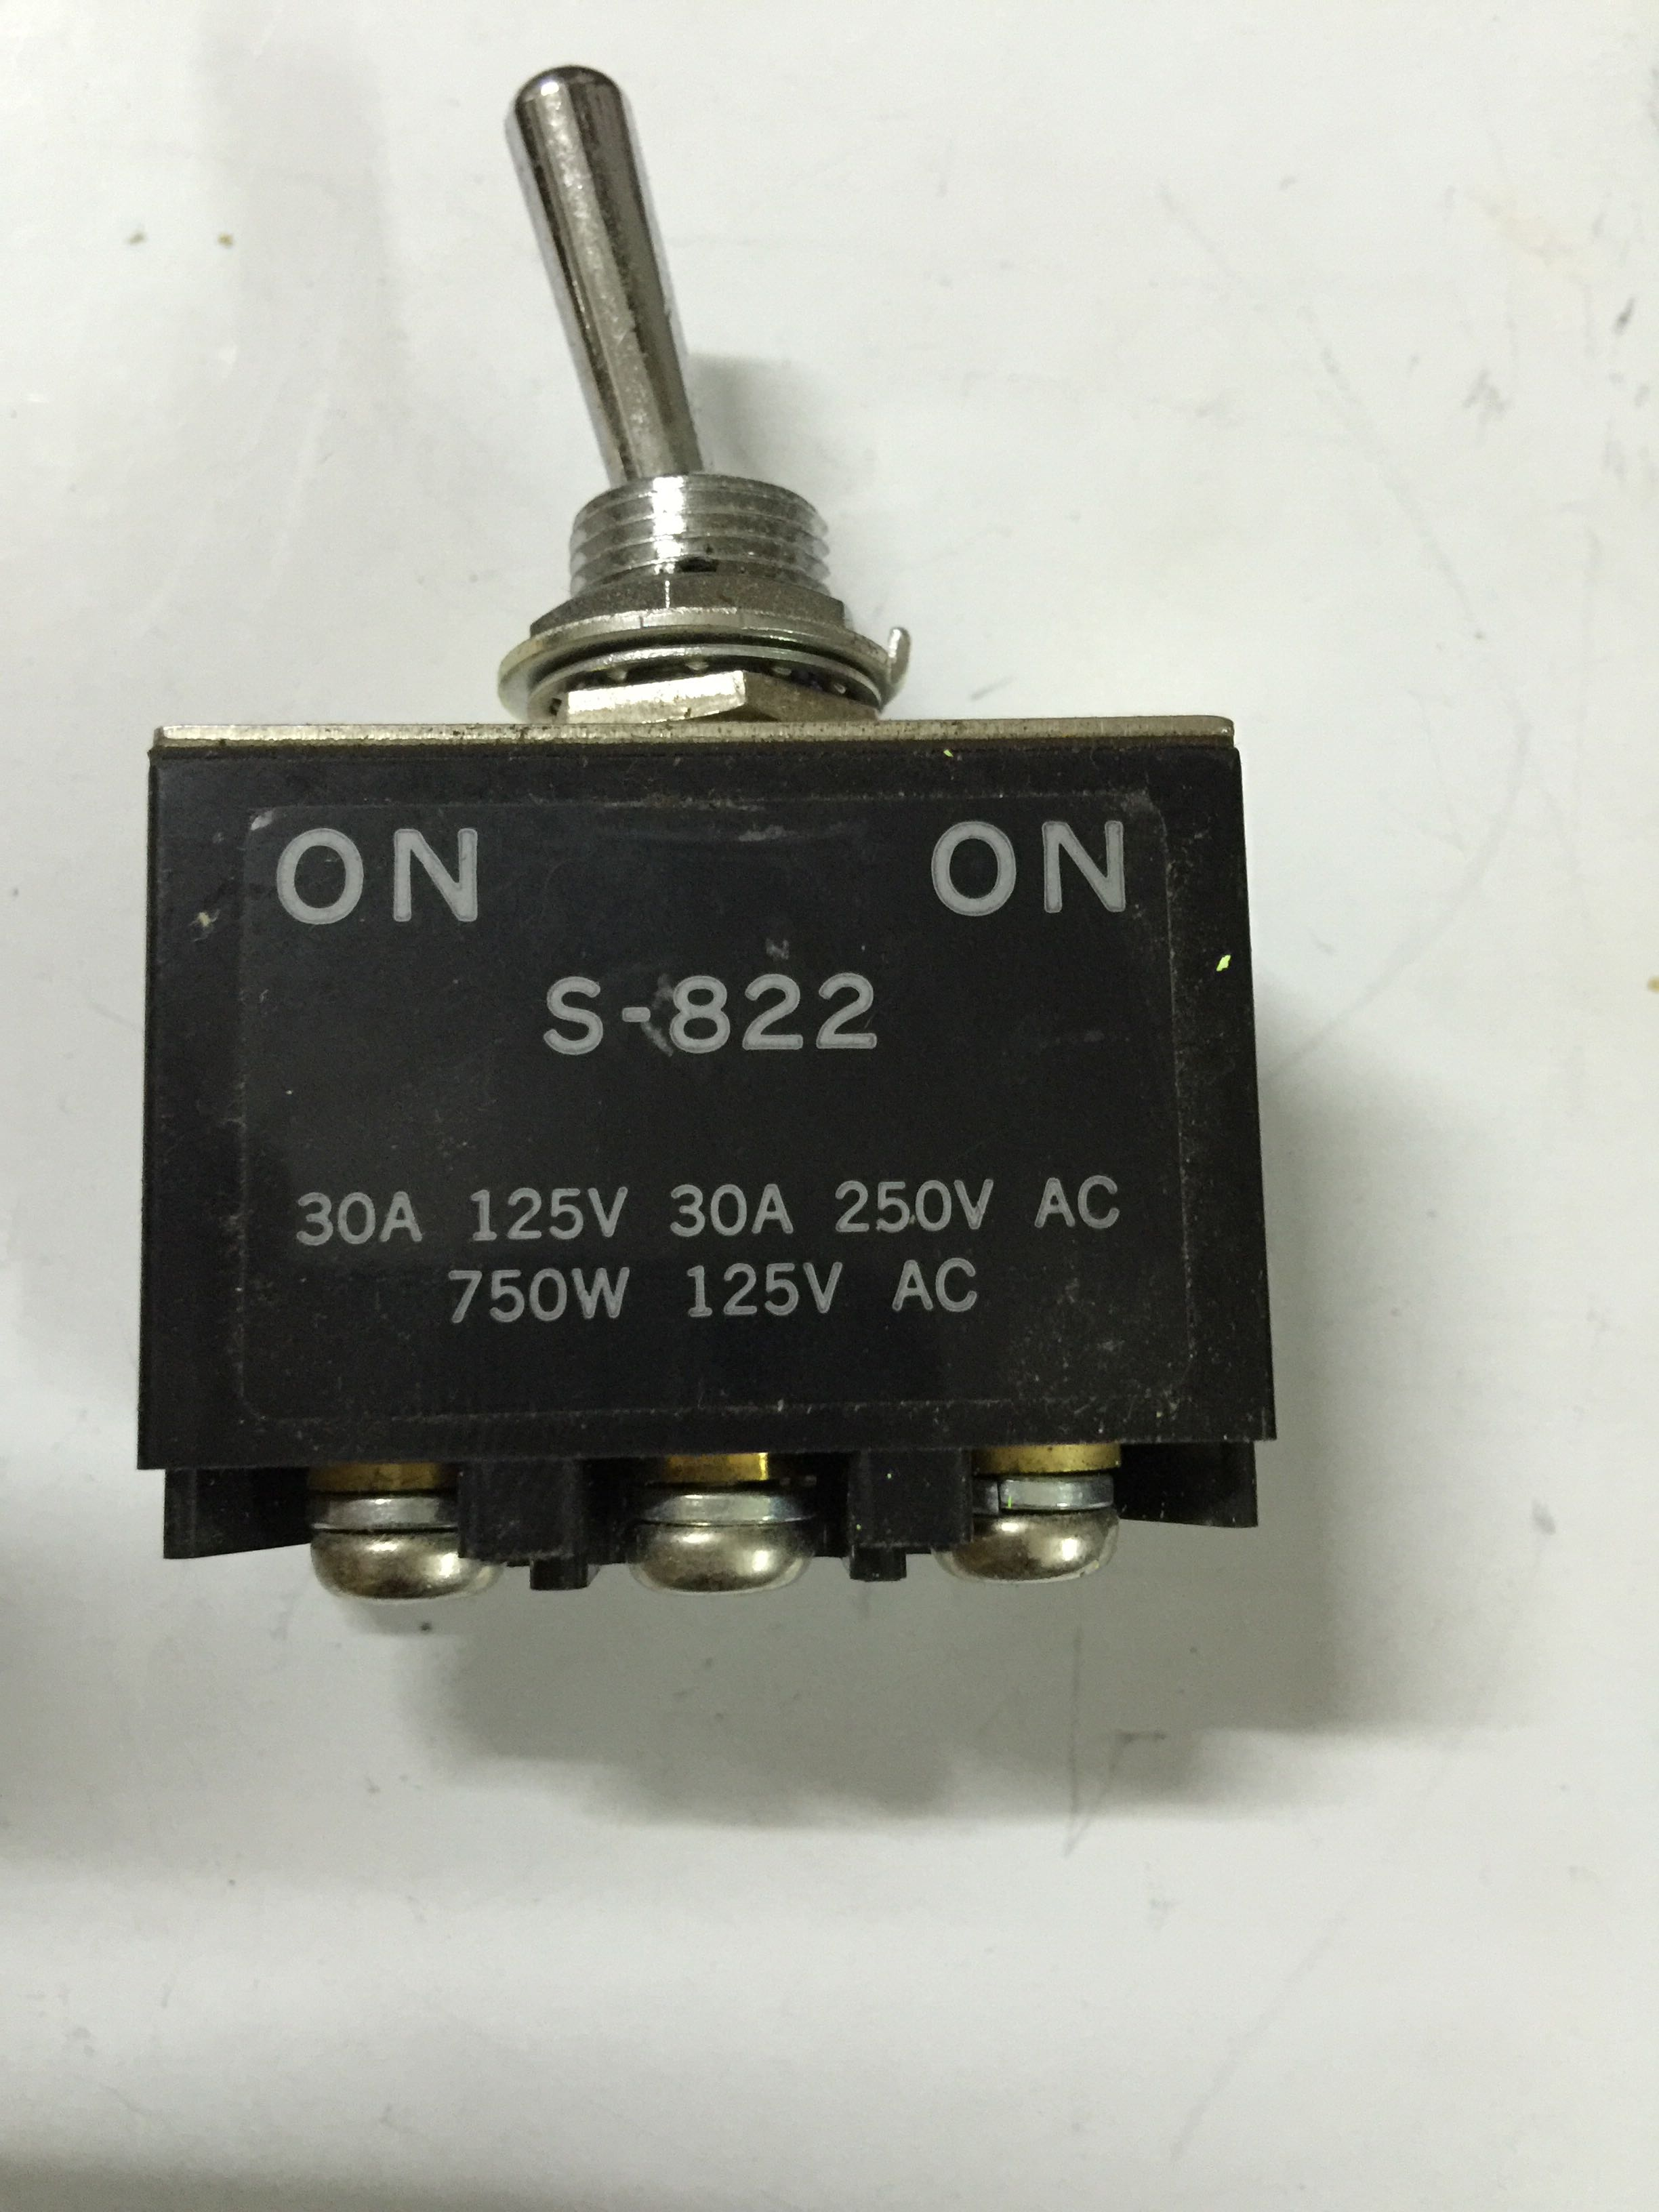 S-822 NKK Toggle Switch 30A 250VACS-822 NKK Toggle Switch 30A 250VAC